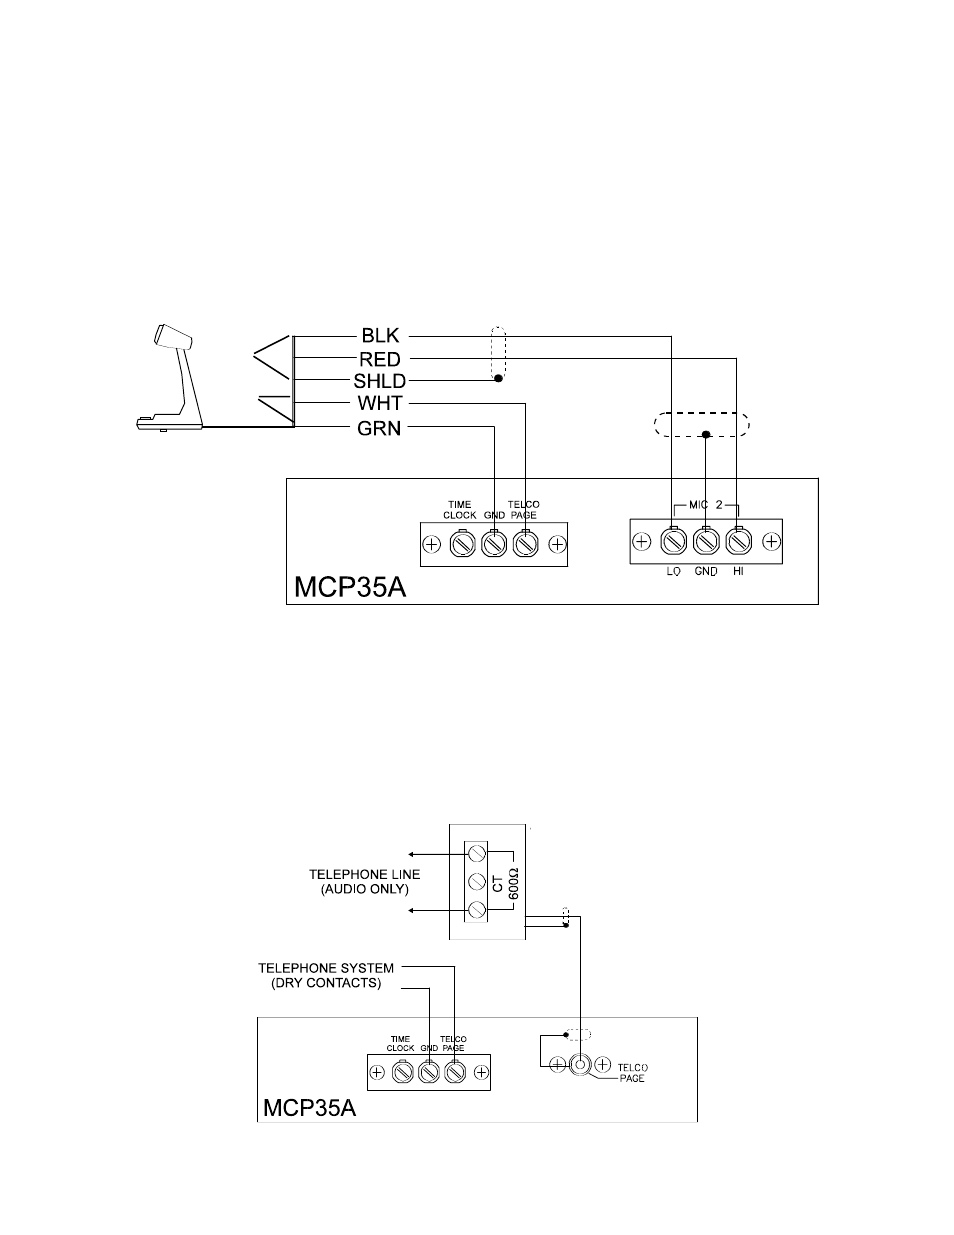 Advanced hook-ups, External emergency mic, Emergency telco page | Bogen  SI35A User Manual | Page 13 / 24